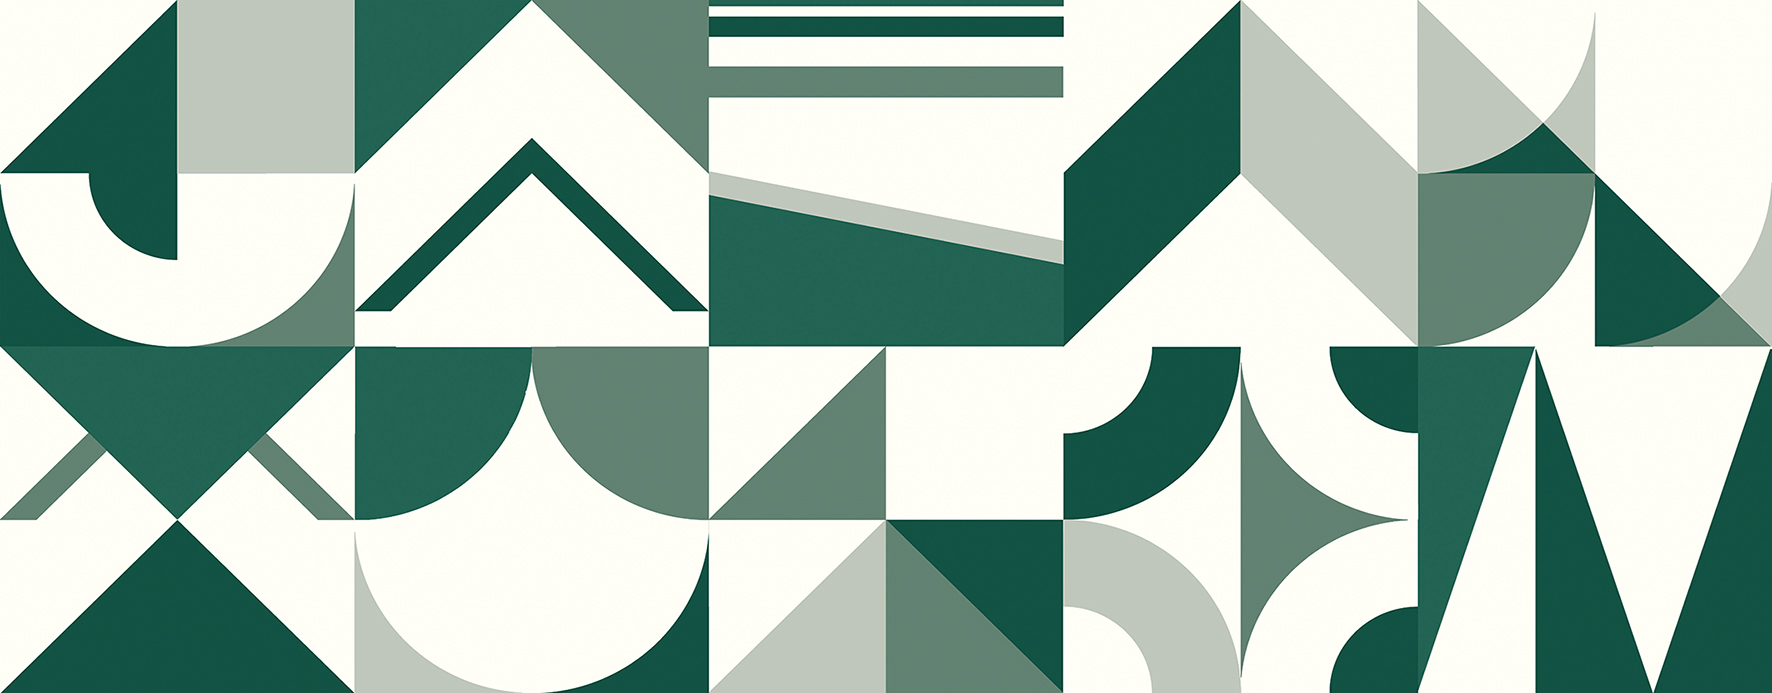 image/catalog/tiles 2020/Hub/118379  geometry emerald.jpg